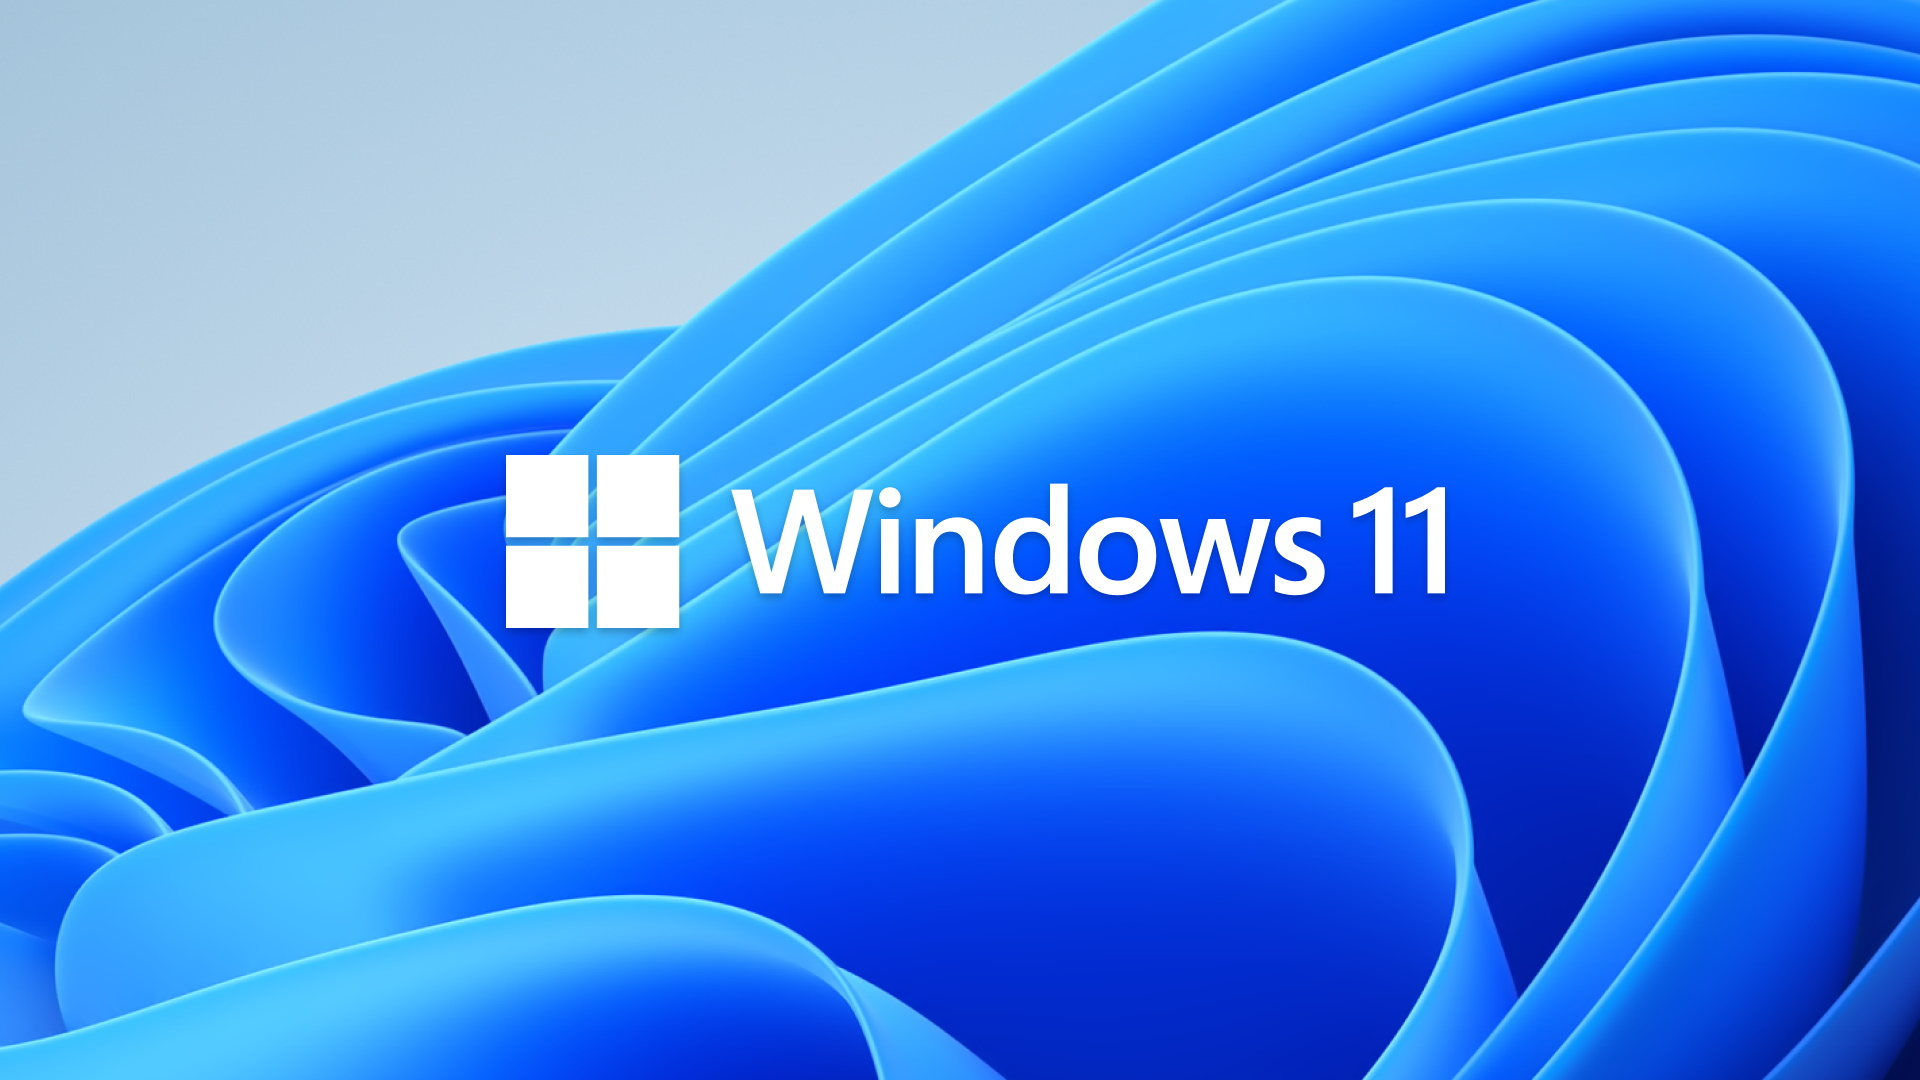 Windows 11 Released: Features, and System Requirements